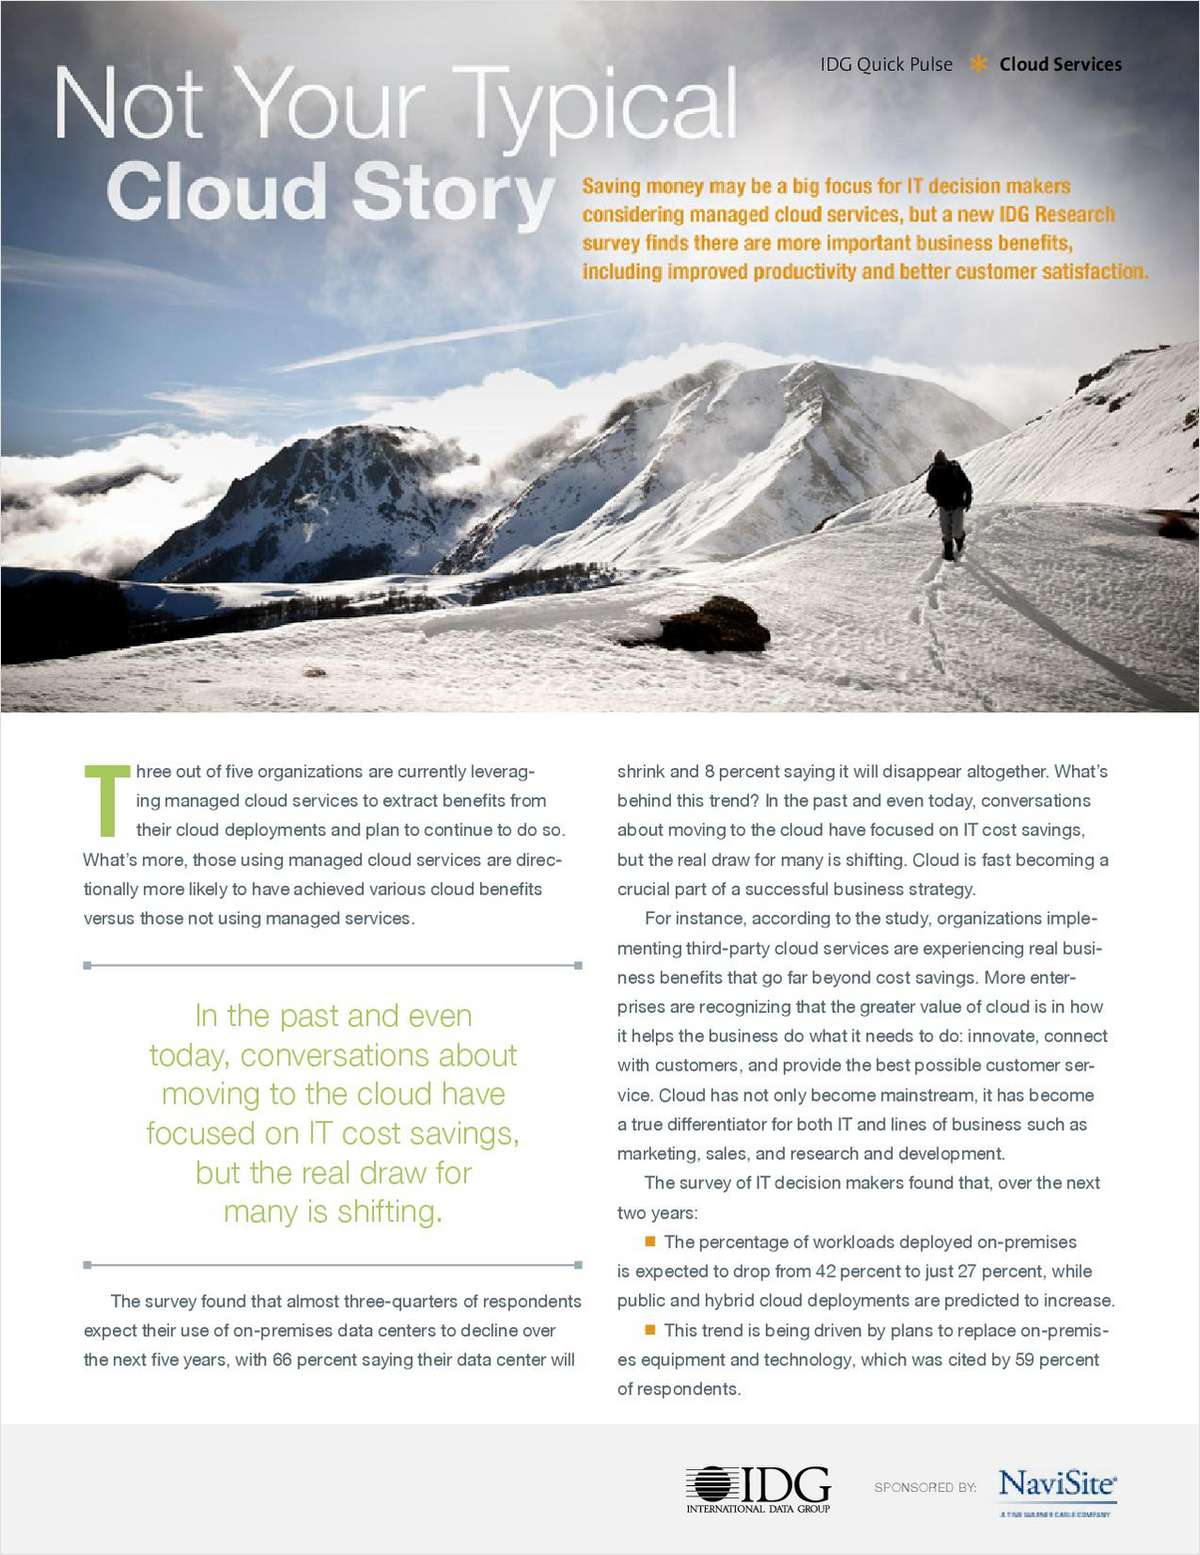 IDG White Paper: Not Your Typical Cloud Story